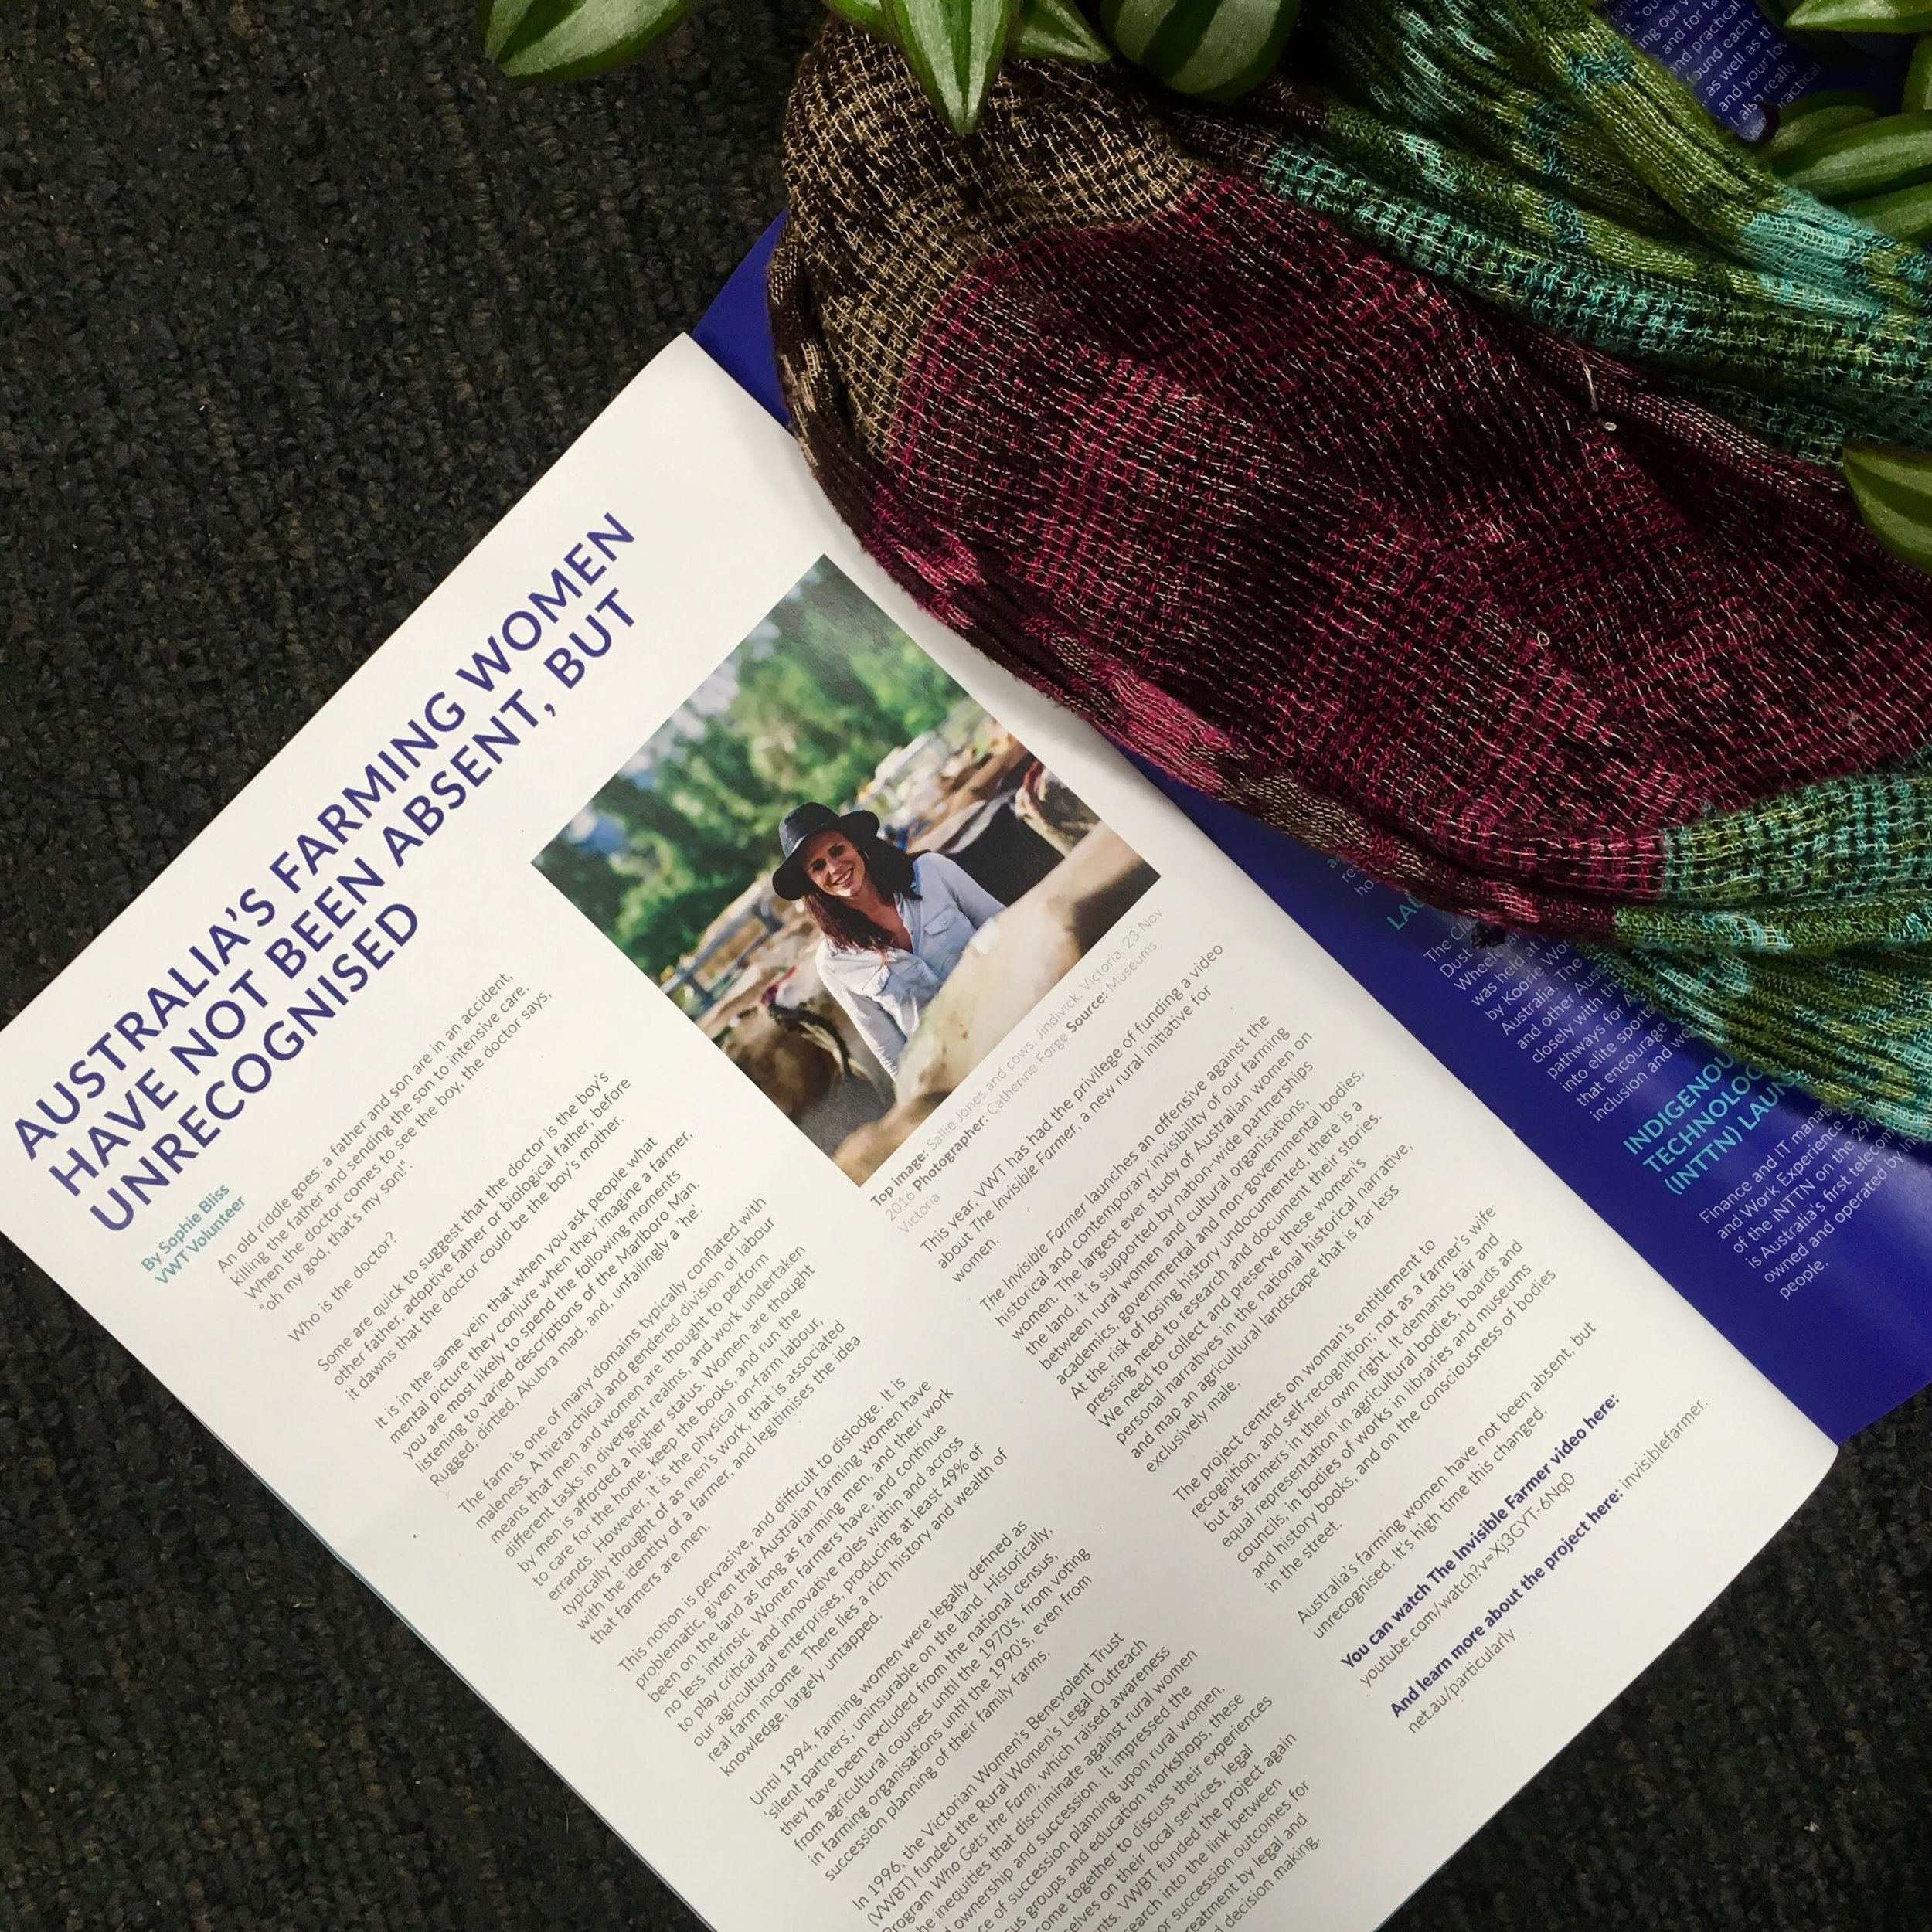 'Australia's Farming Women Have Not Been Absent, But Unrecognised', Victorian Women's Trust magazine, Winter 2017.